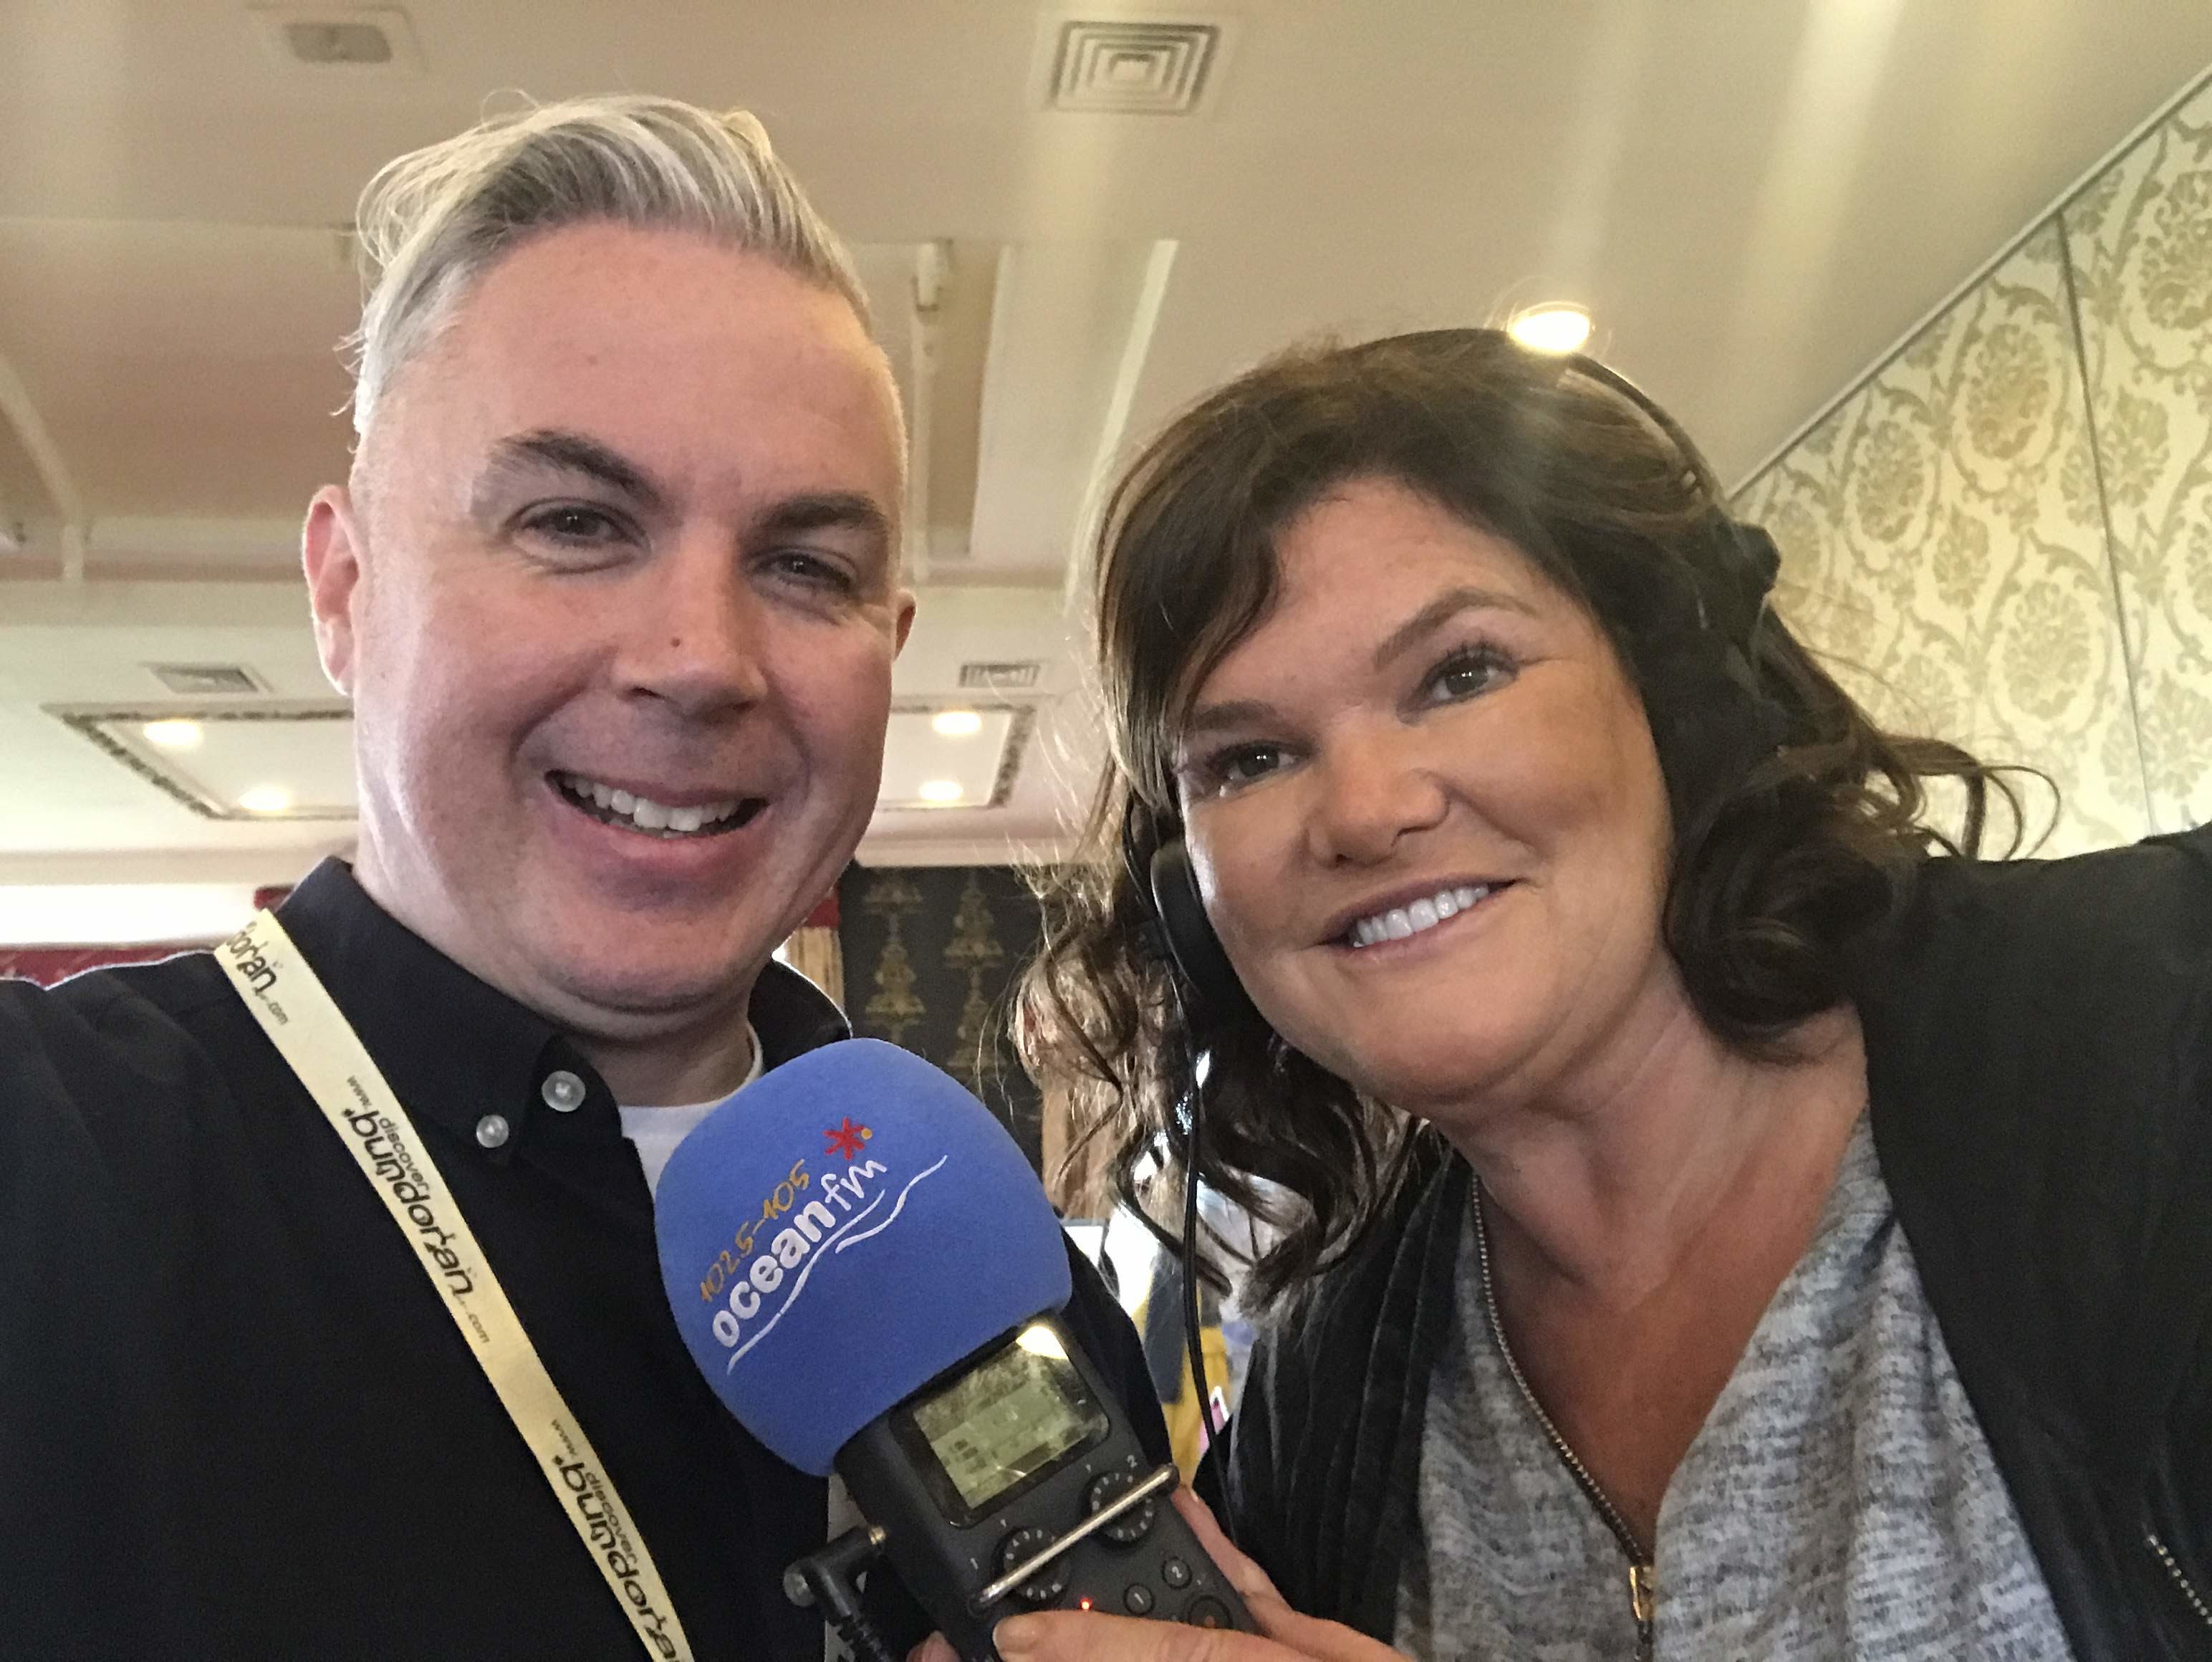 Shane Smyth pictured with Ocean FM's Claire Ronan